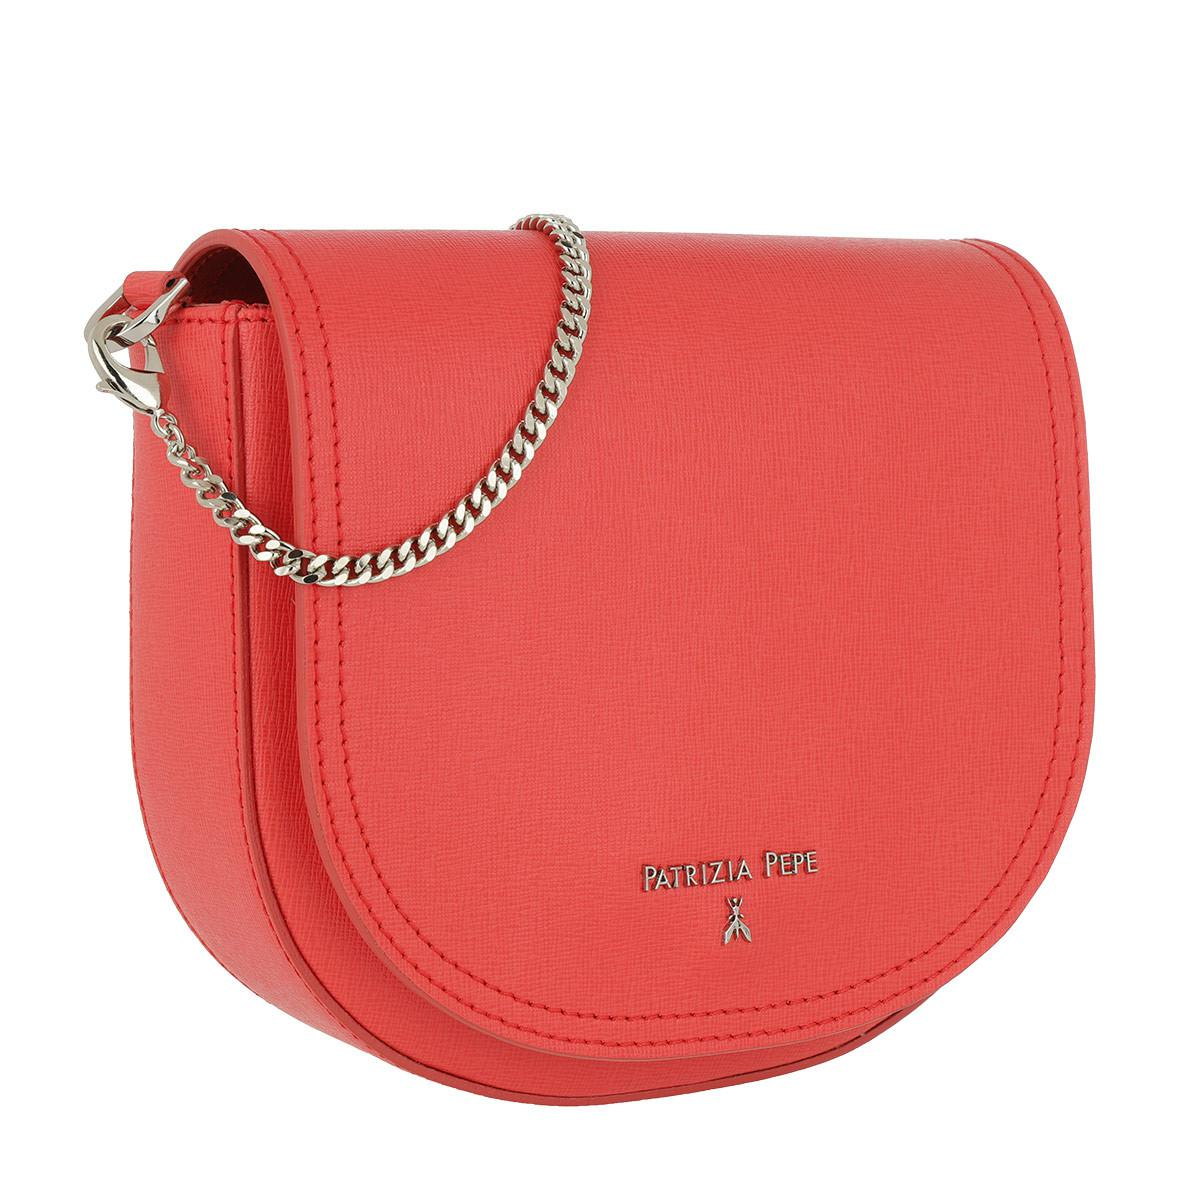 df075b7678 Patrizia Pepe Pepe Saffiano Crossbody Bag Mars Red in Red - Lyst